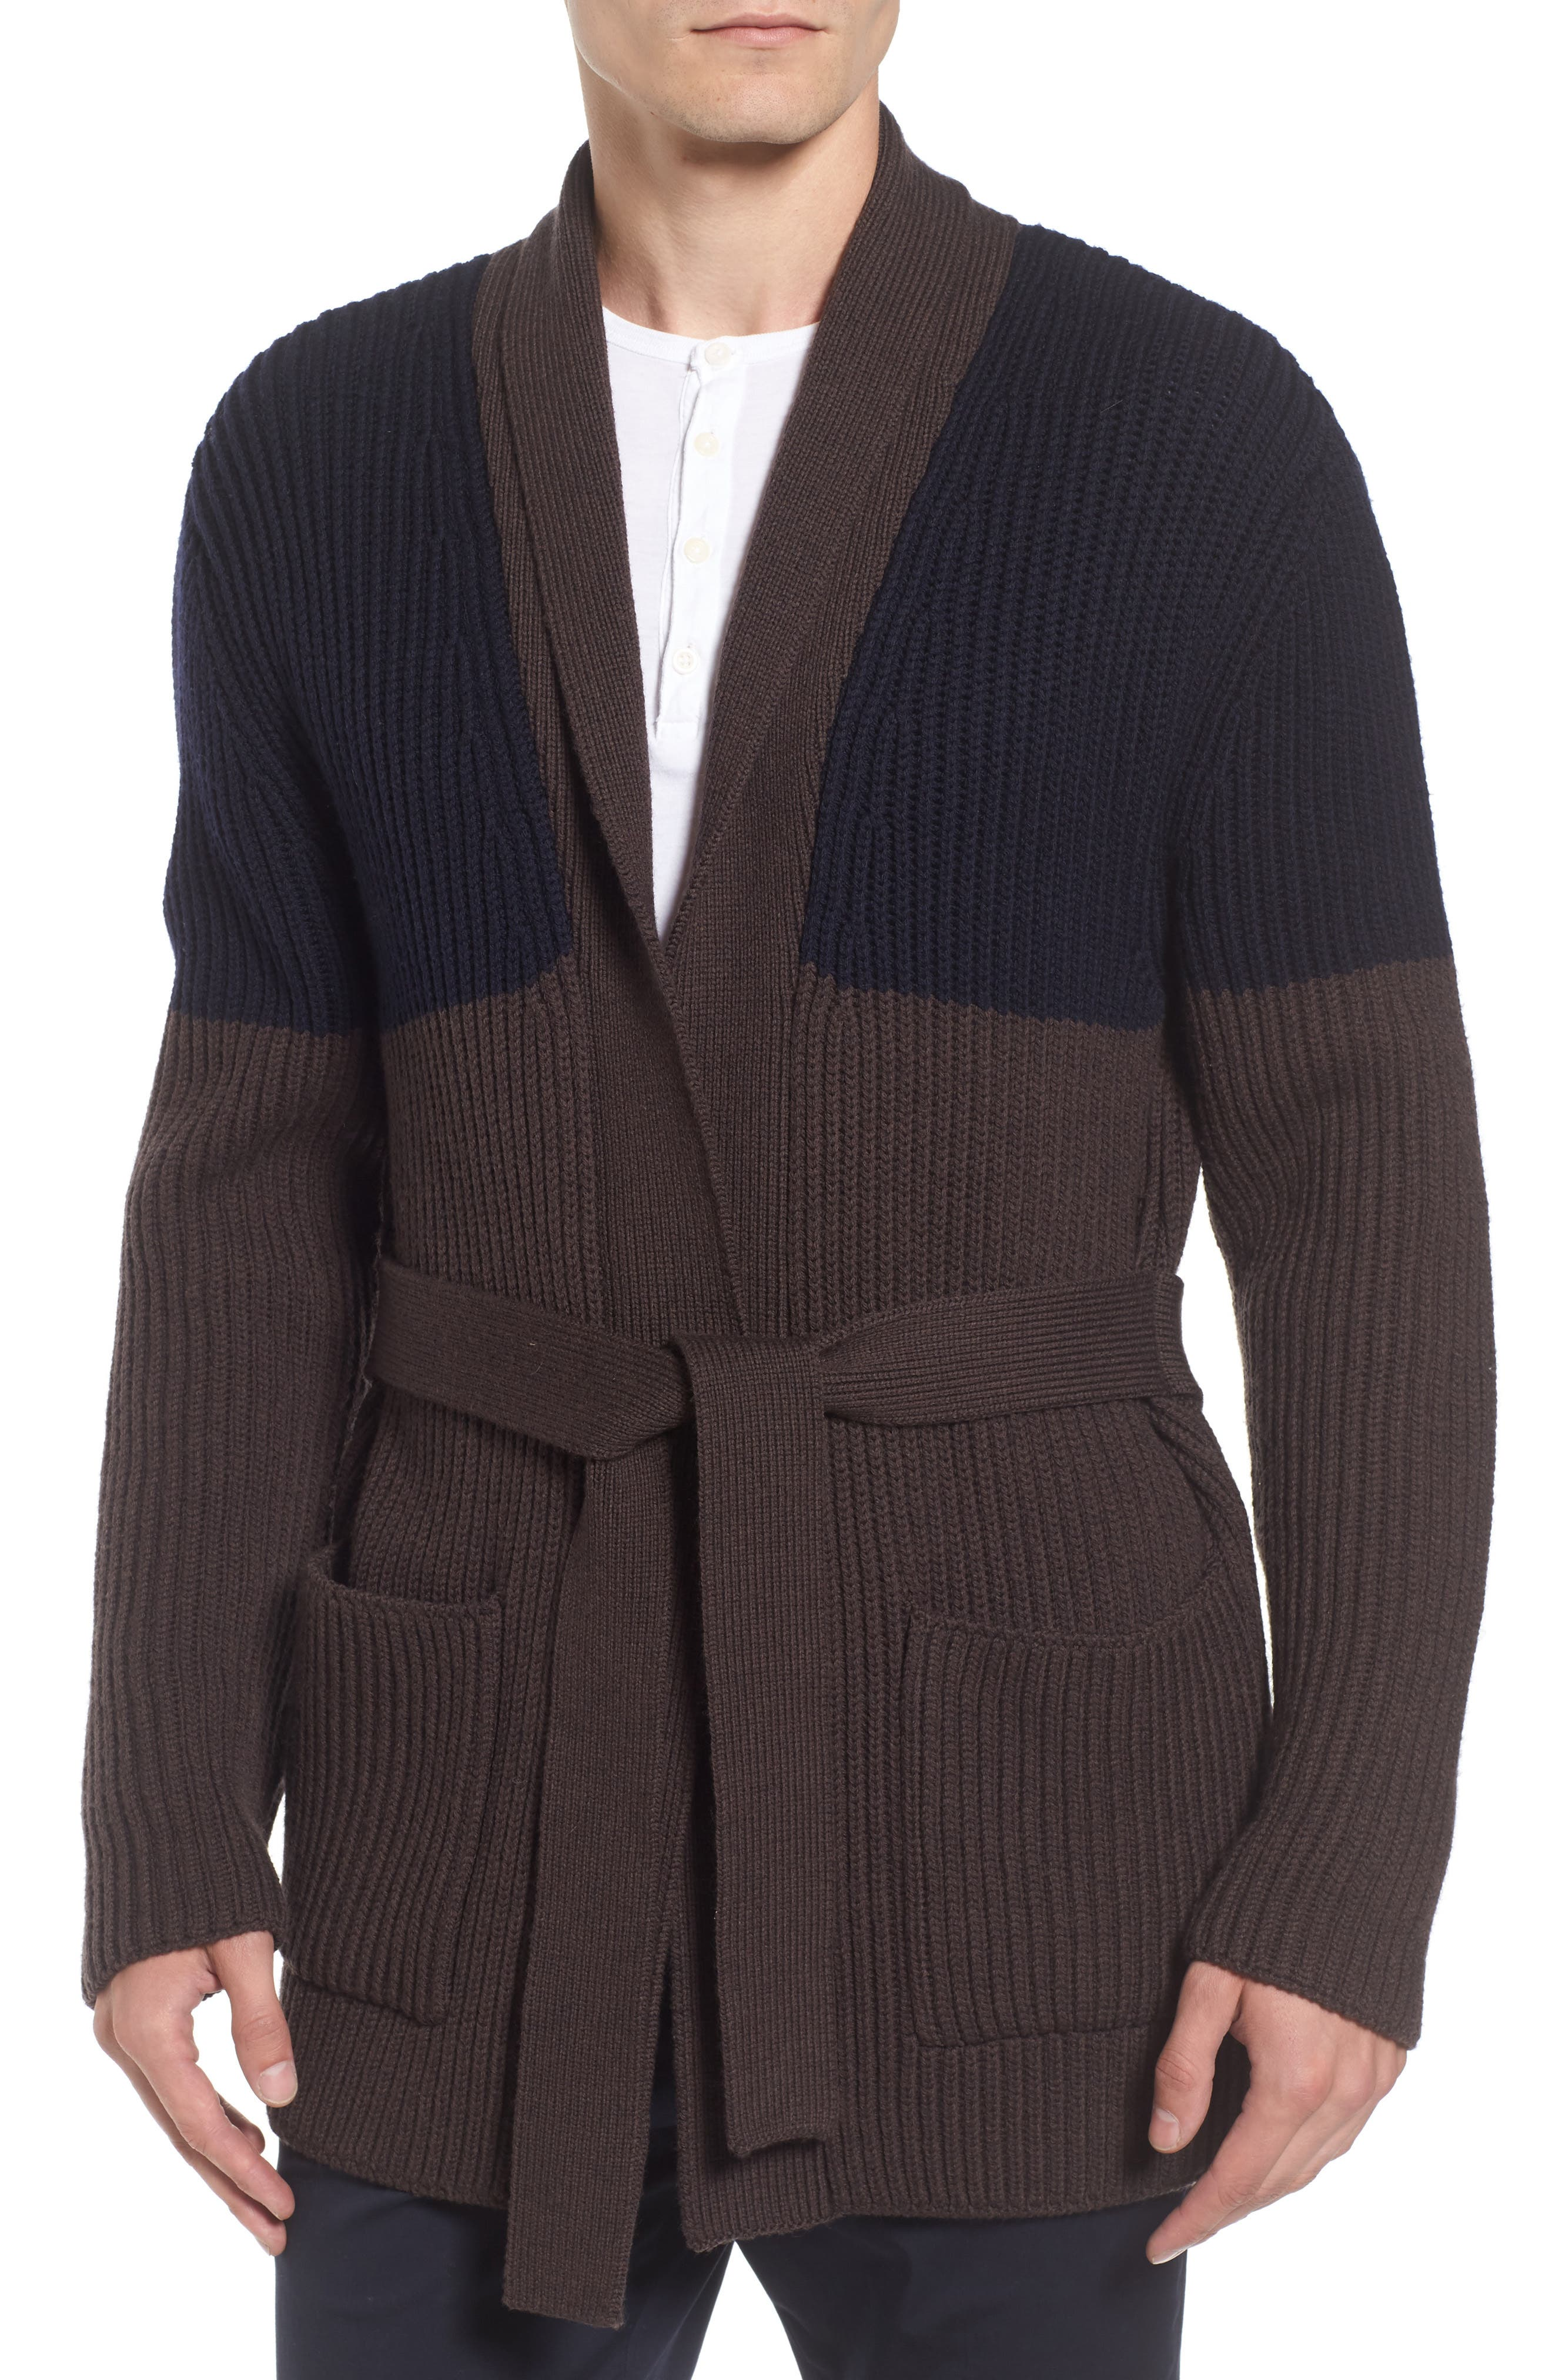 Colorblock Wool Wrap Sweater,                         Main,                         color, Navy/ Brown